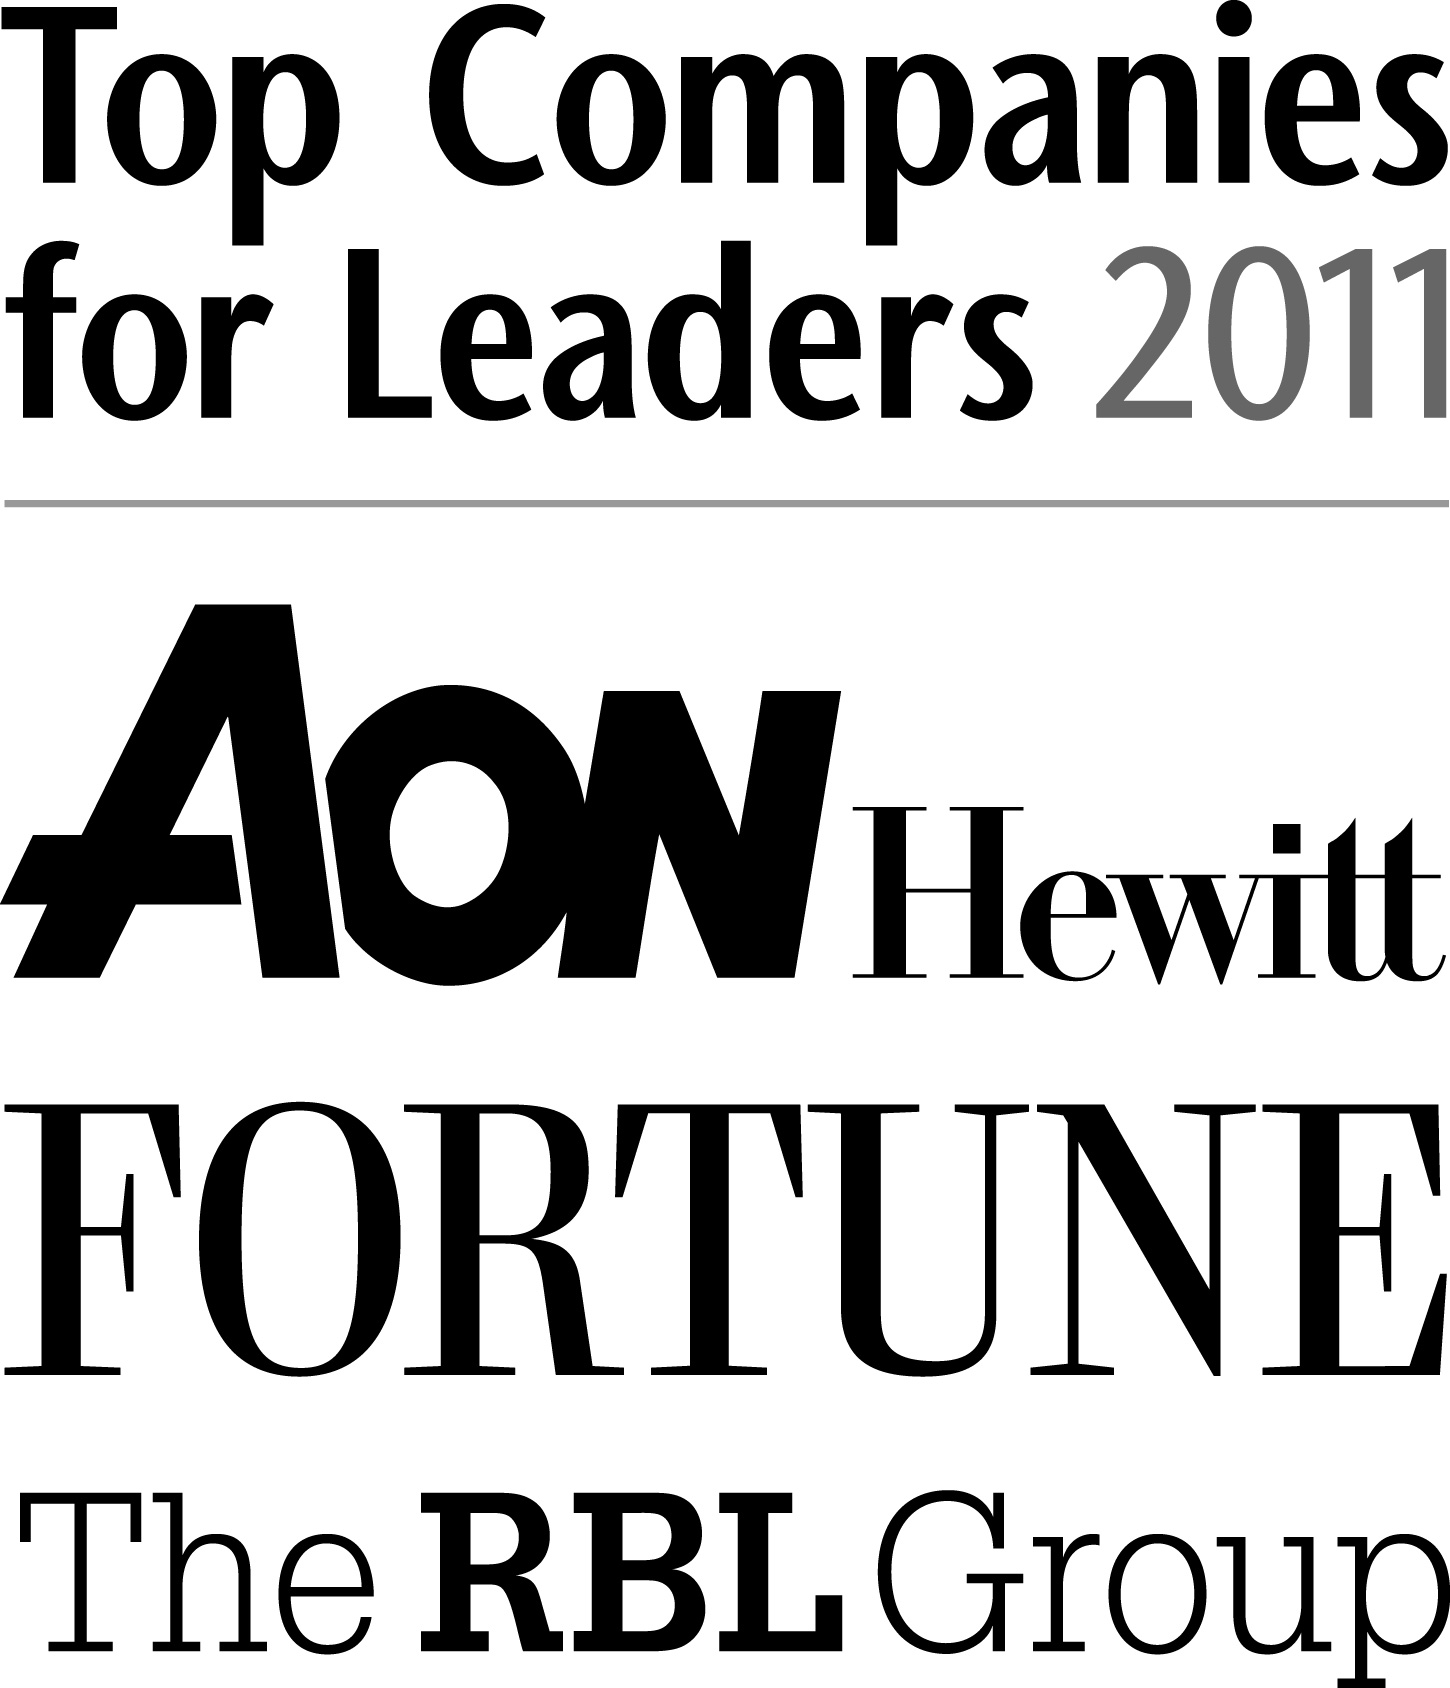 Top Company for Leaders 2011